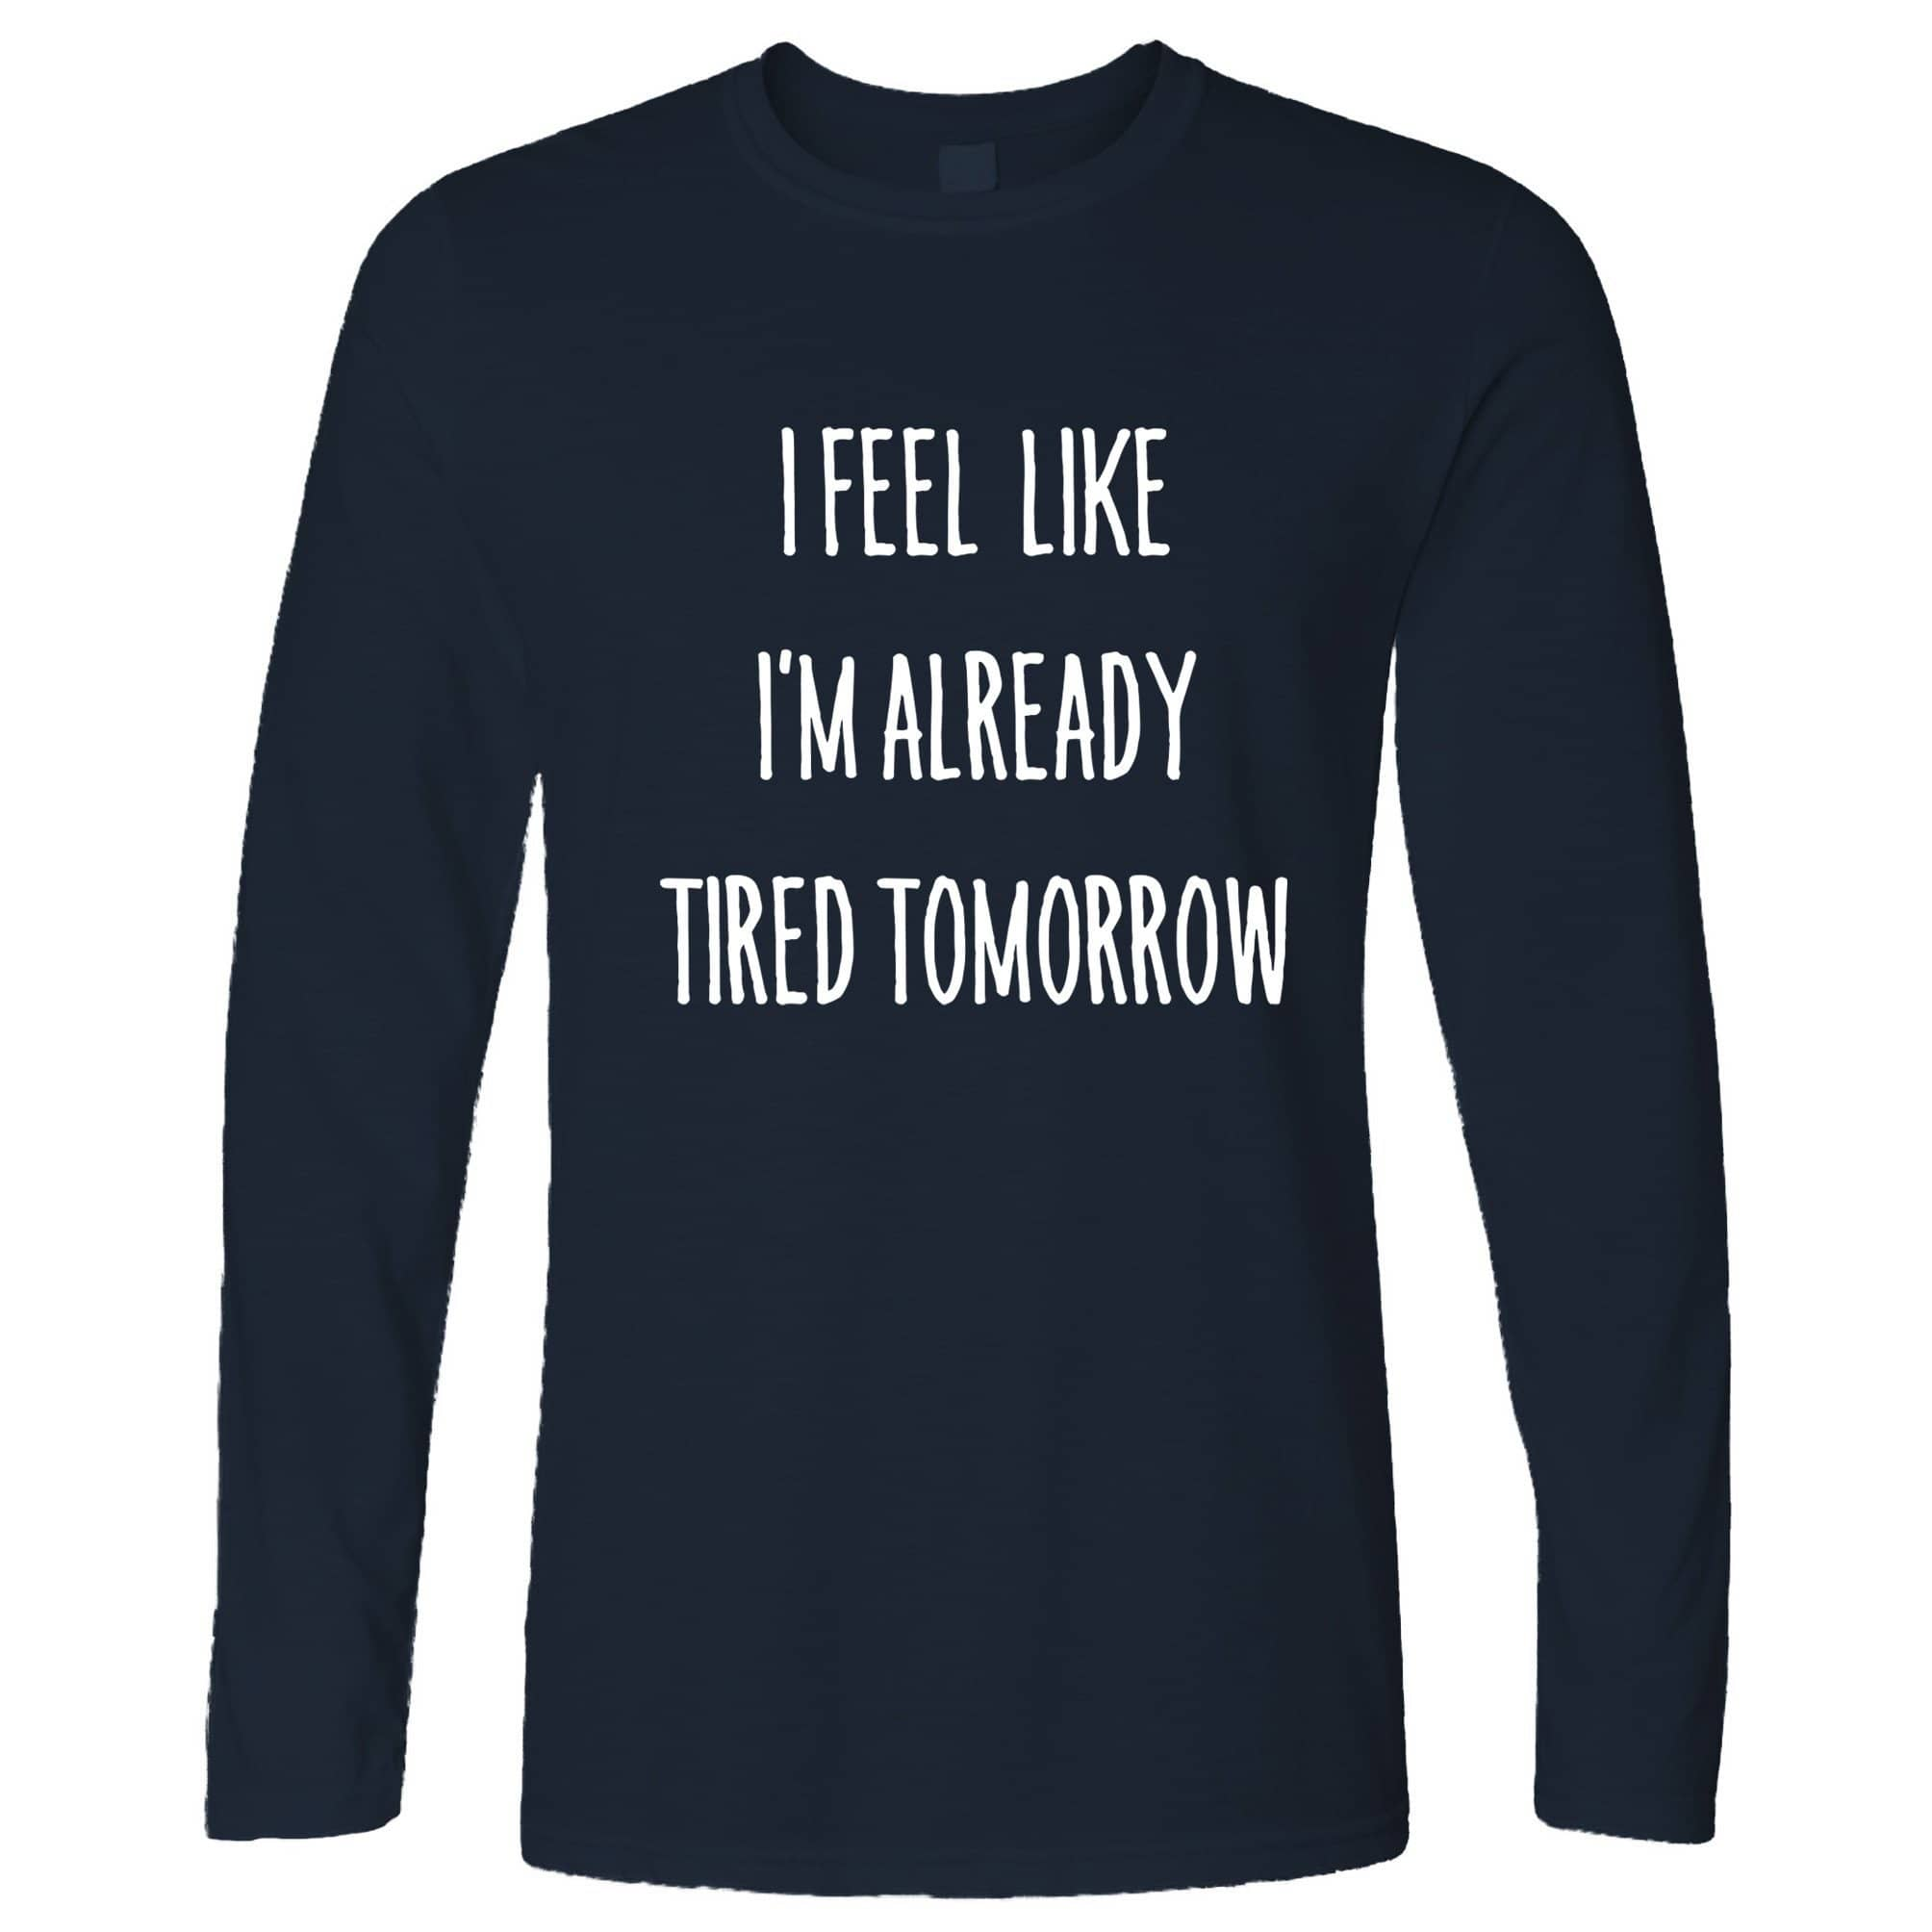 Novelty Long Sleeve I Feel Like I'm Already Tired Tomorrow T-Shirt